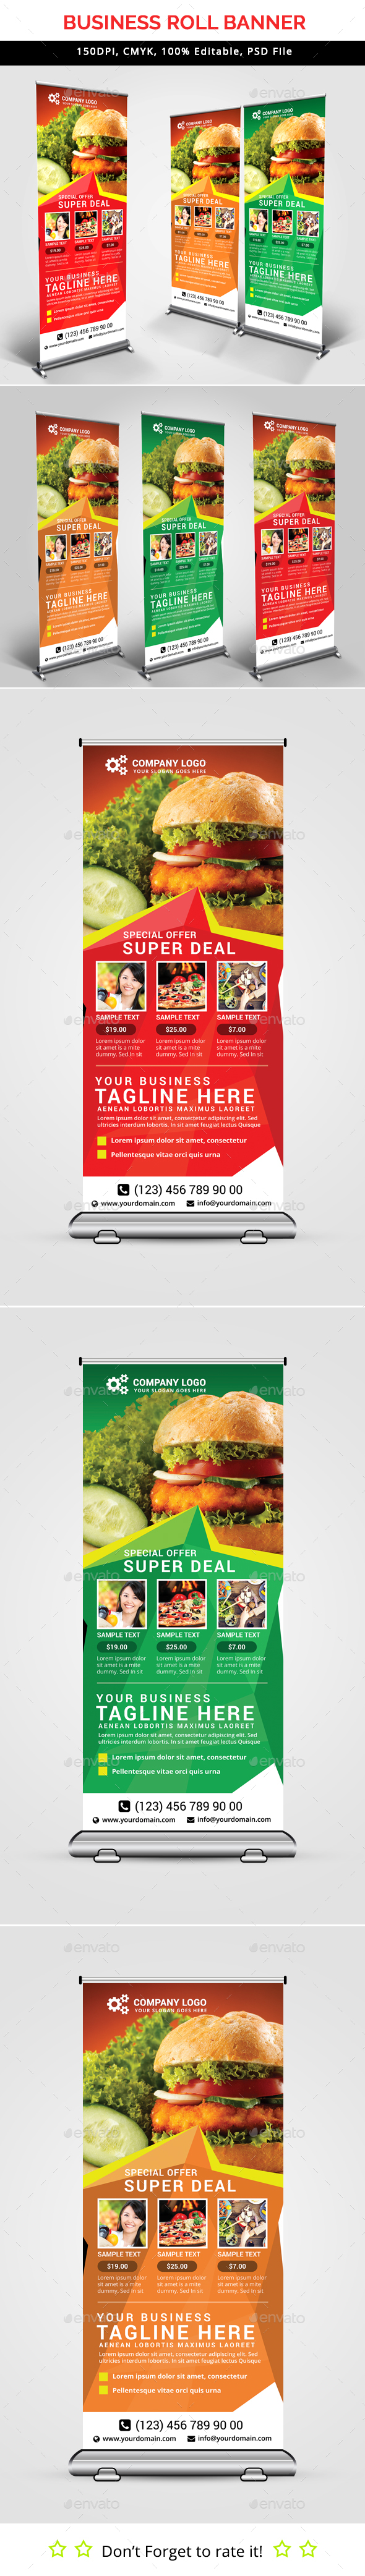 Fast Food Roll Up Banner V35 - Signage Print Templates